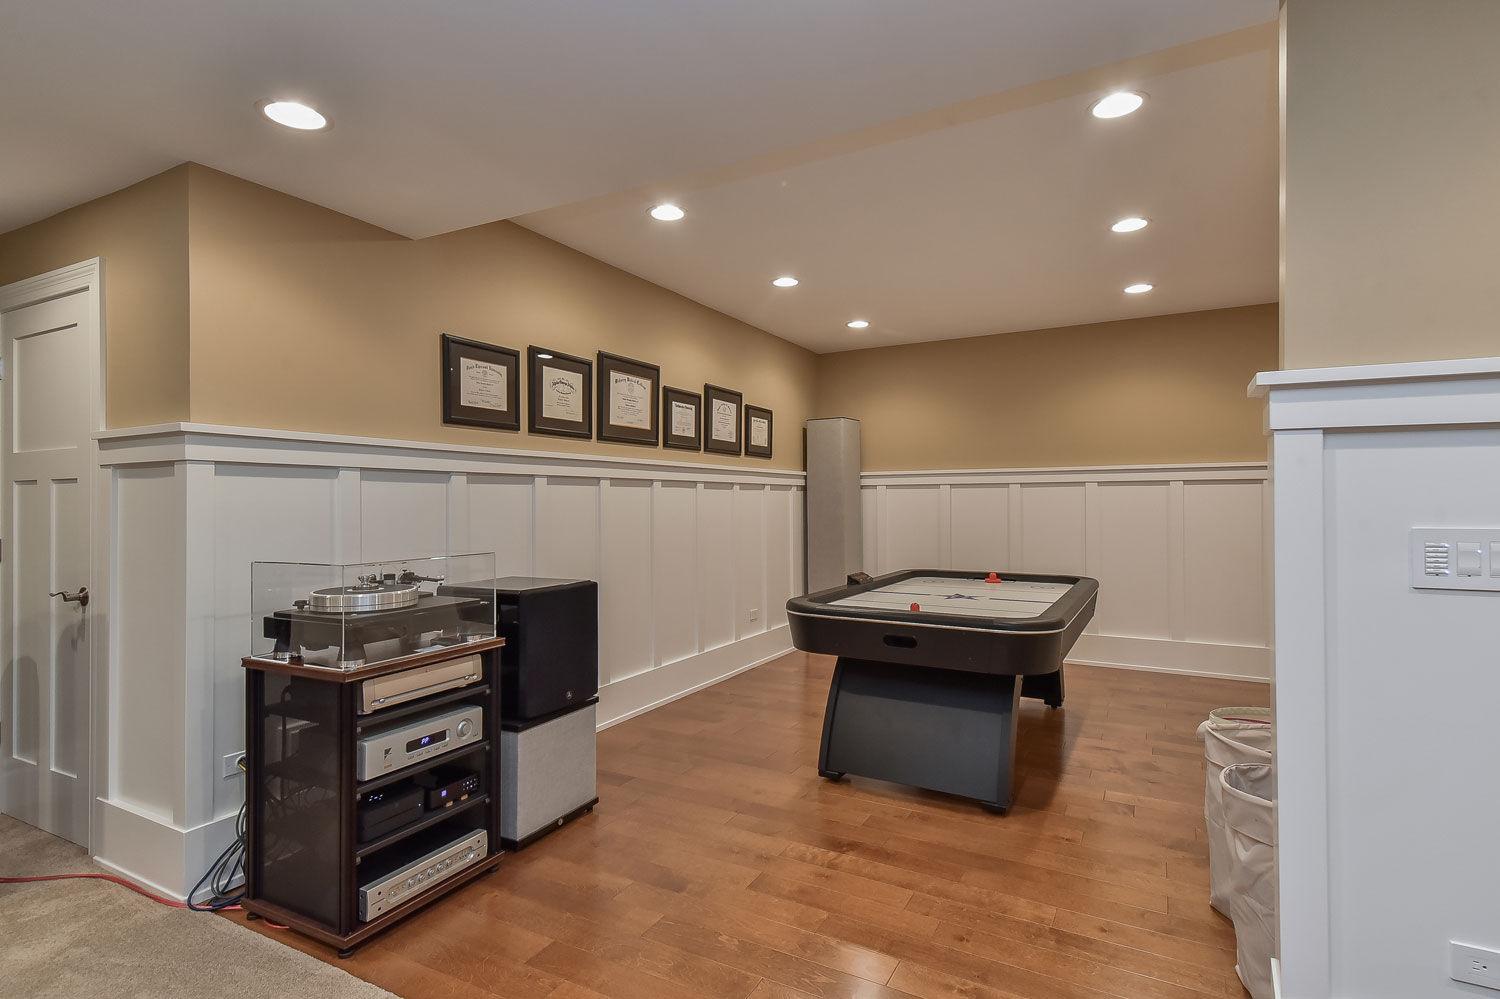 Naperville Basement Finishing Before and After - Sebring Services